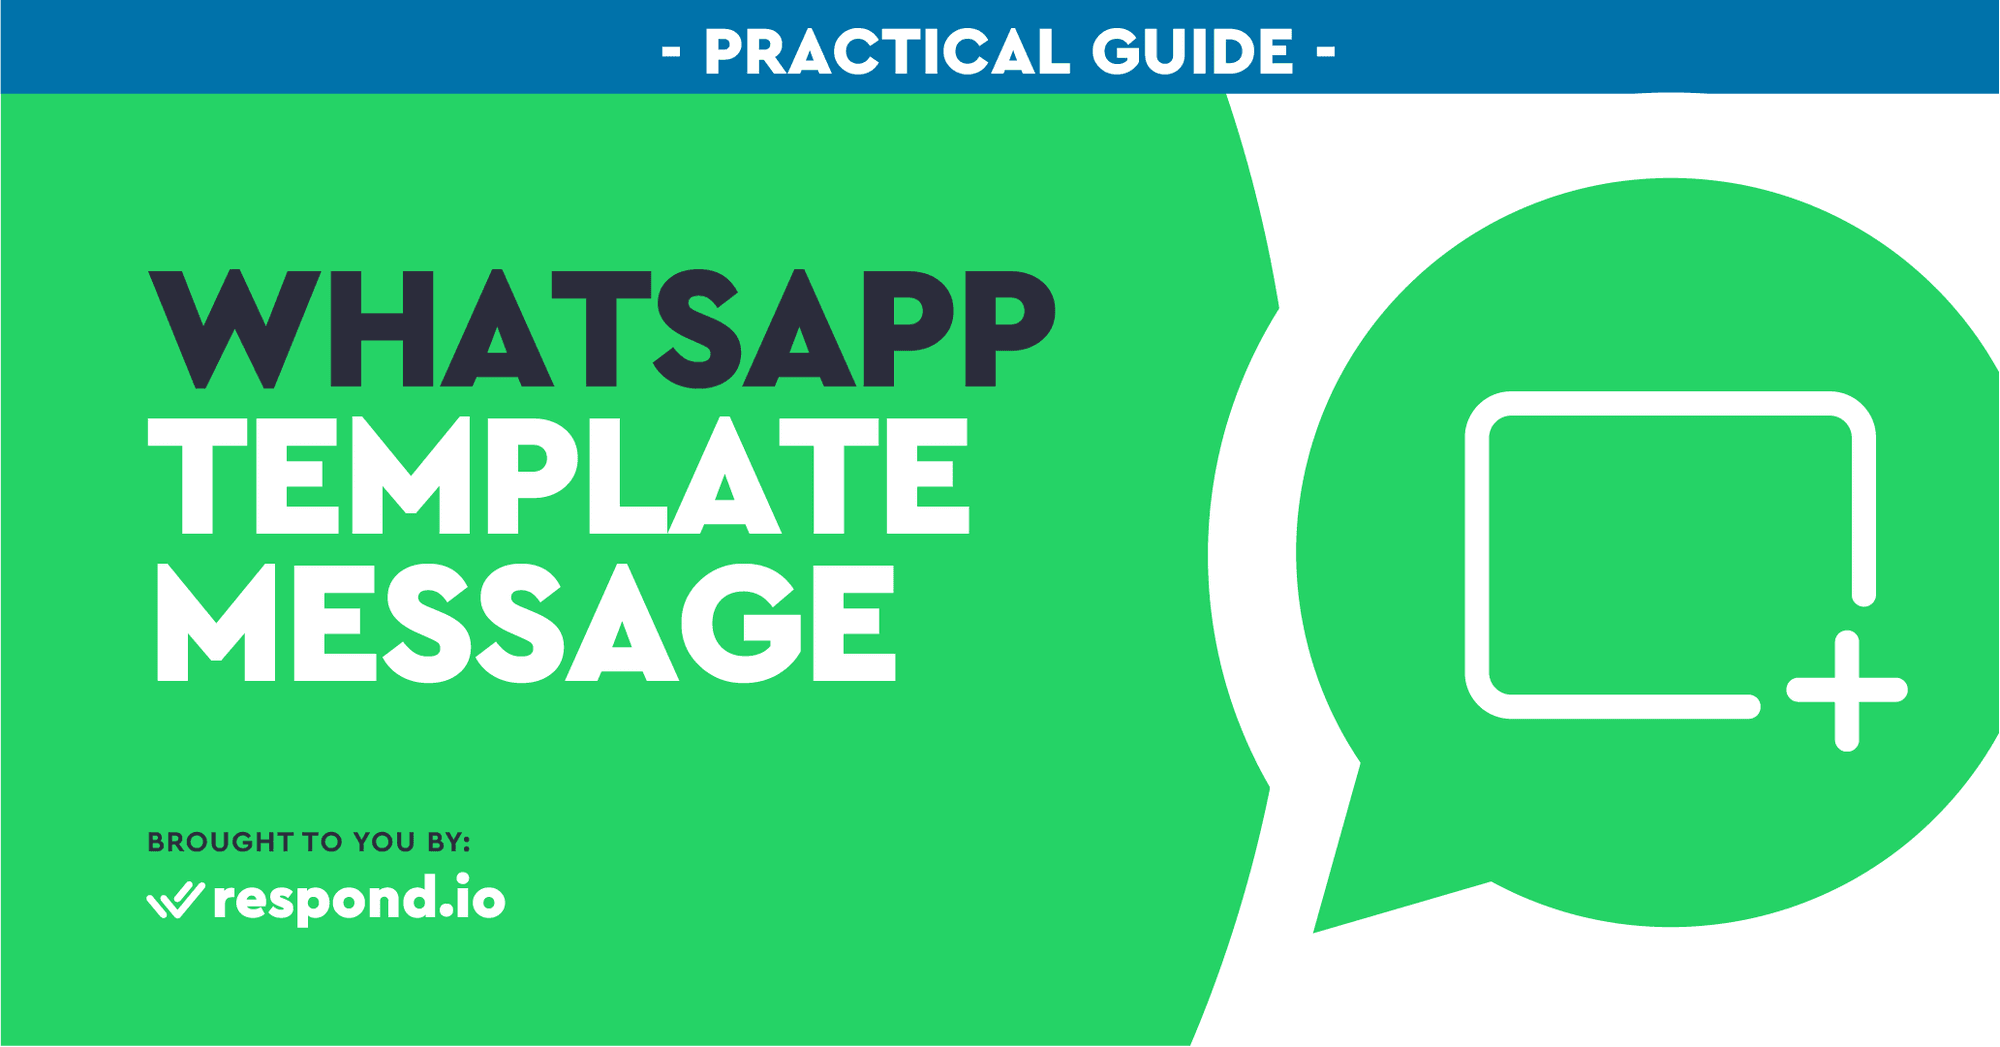 The Practical Guide To WhatsApp Template Message (May 2021)